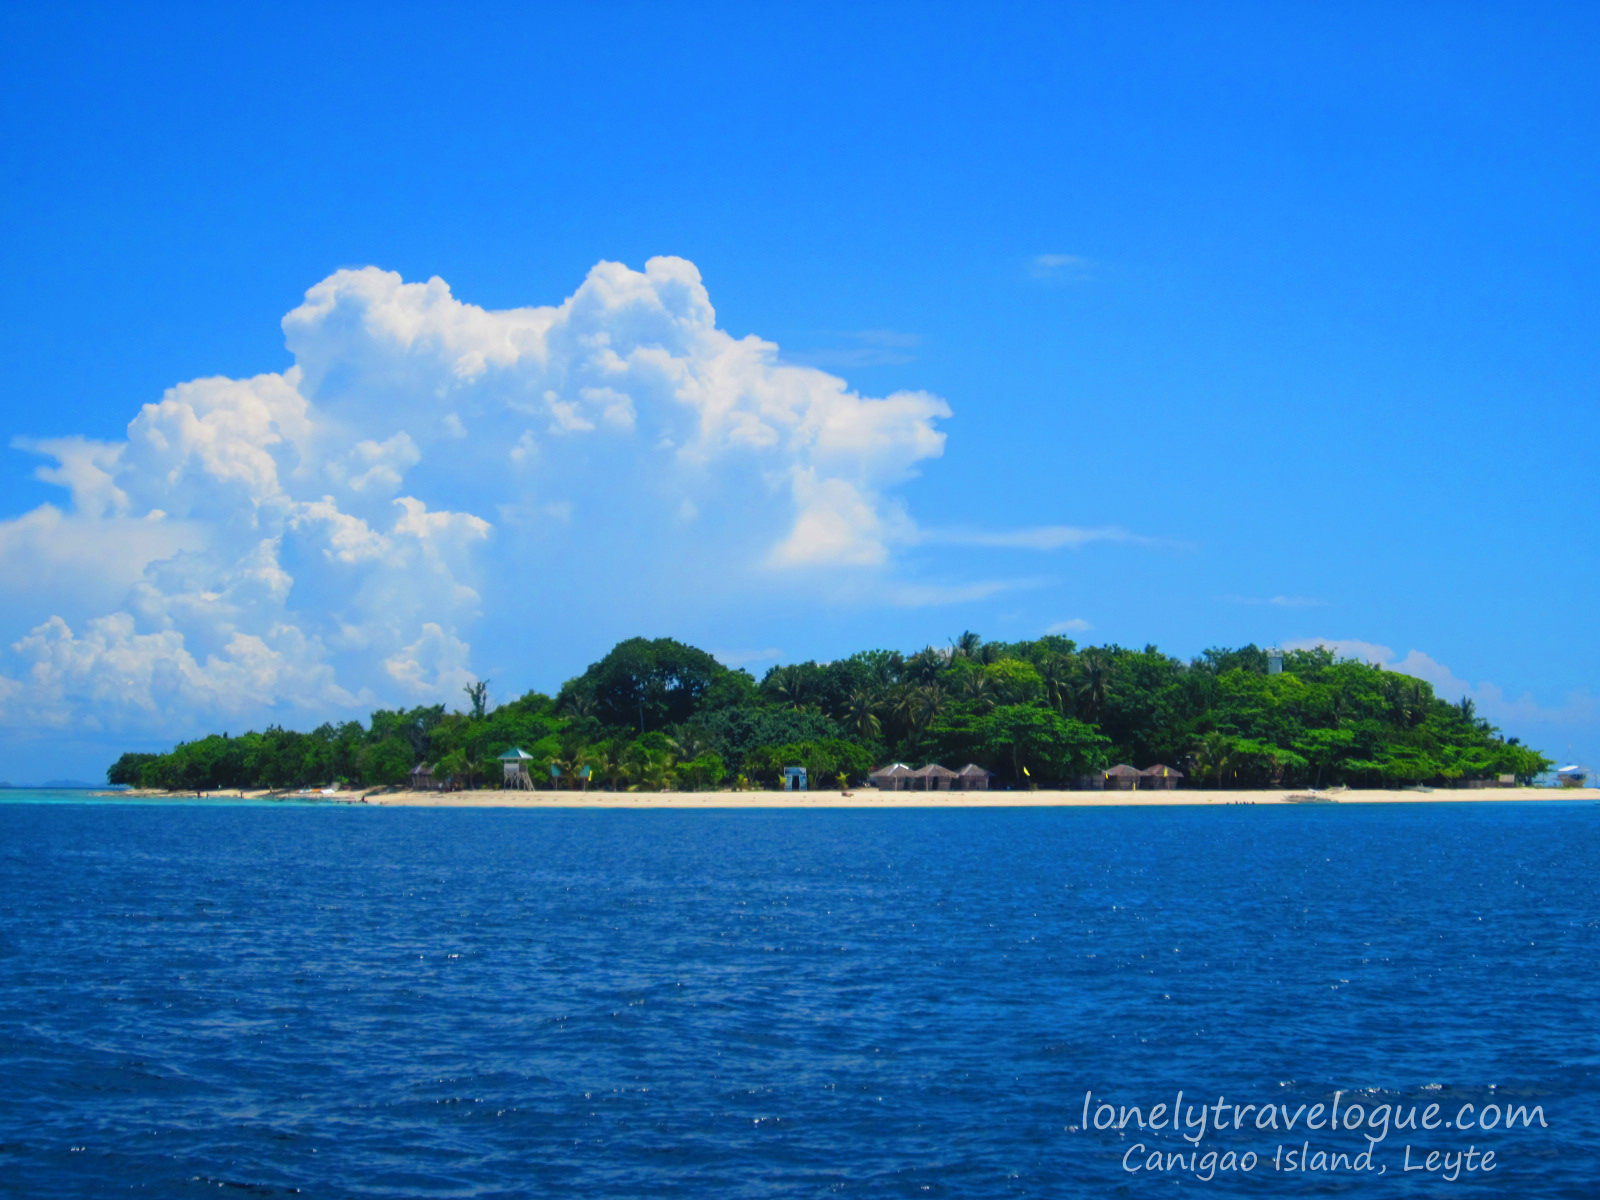 Lonely Travelogue The Beauty Of Canigao Island